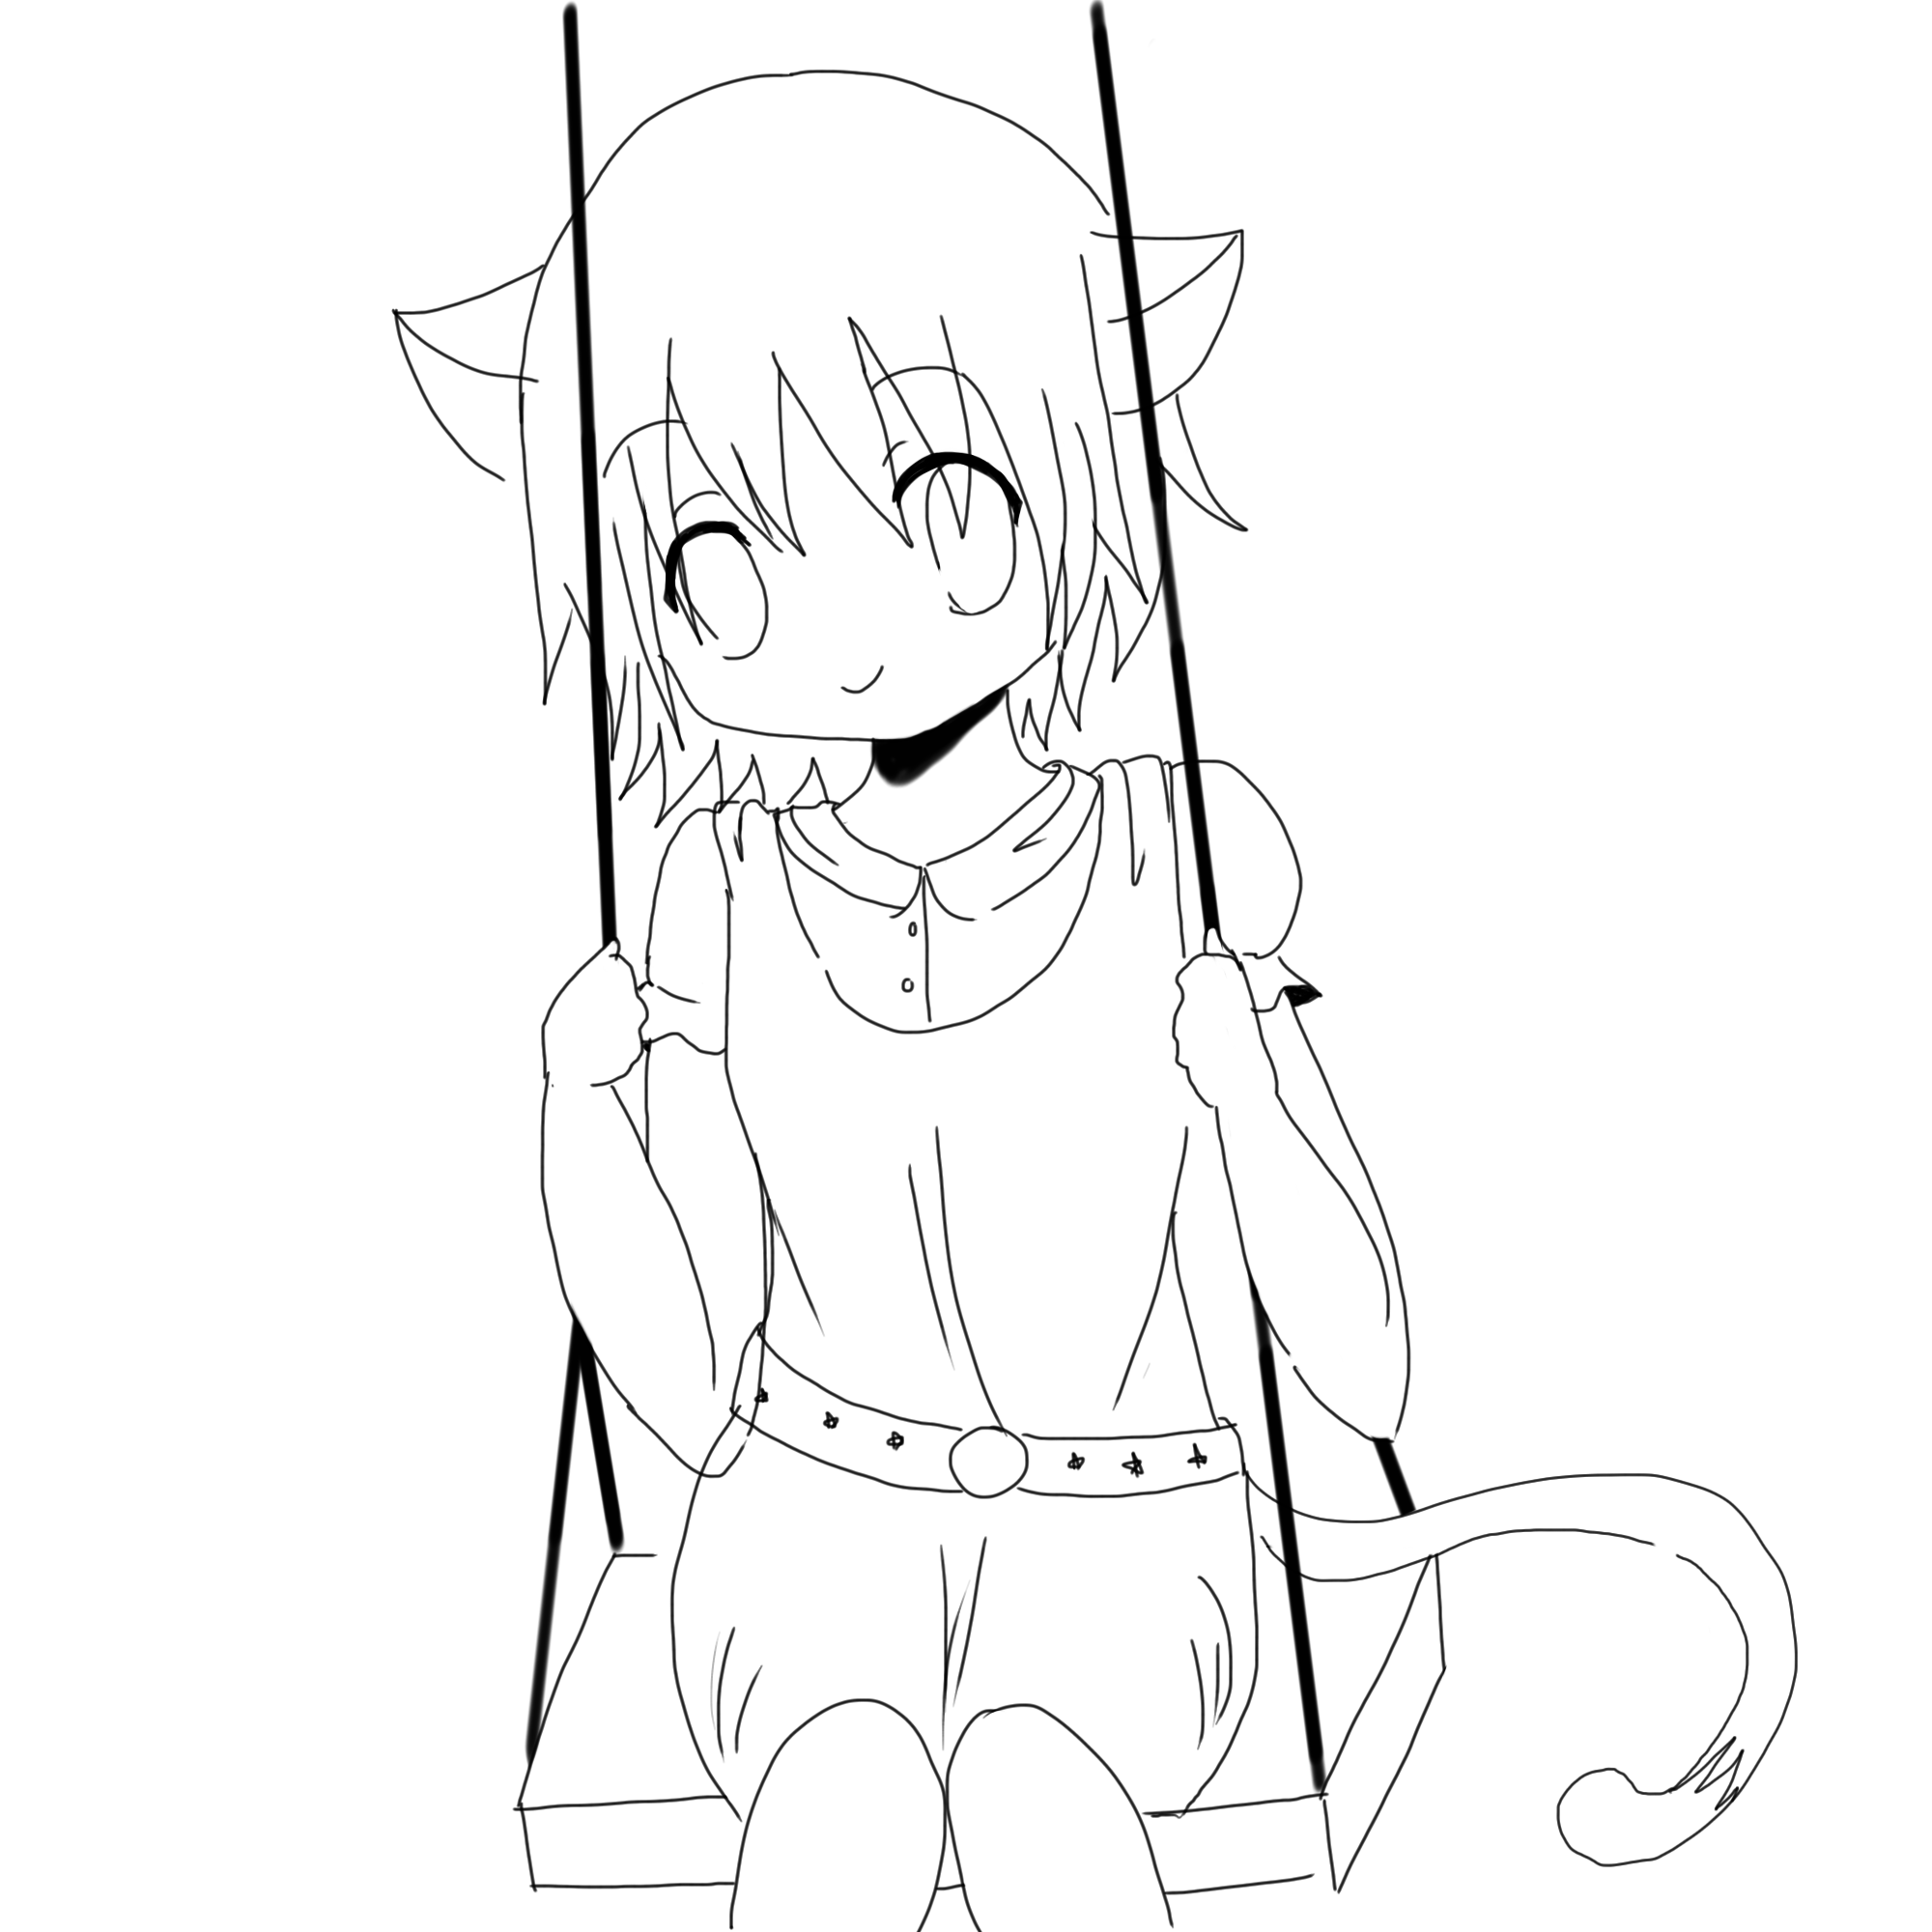 anime cat girl coloring pages anime cat girl coloring pages coloring home anime pages cat girl coloring